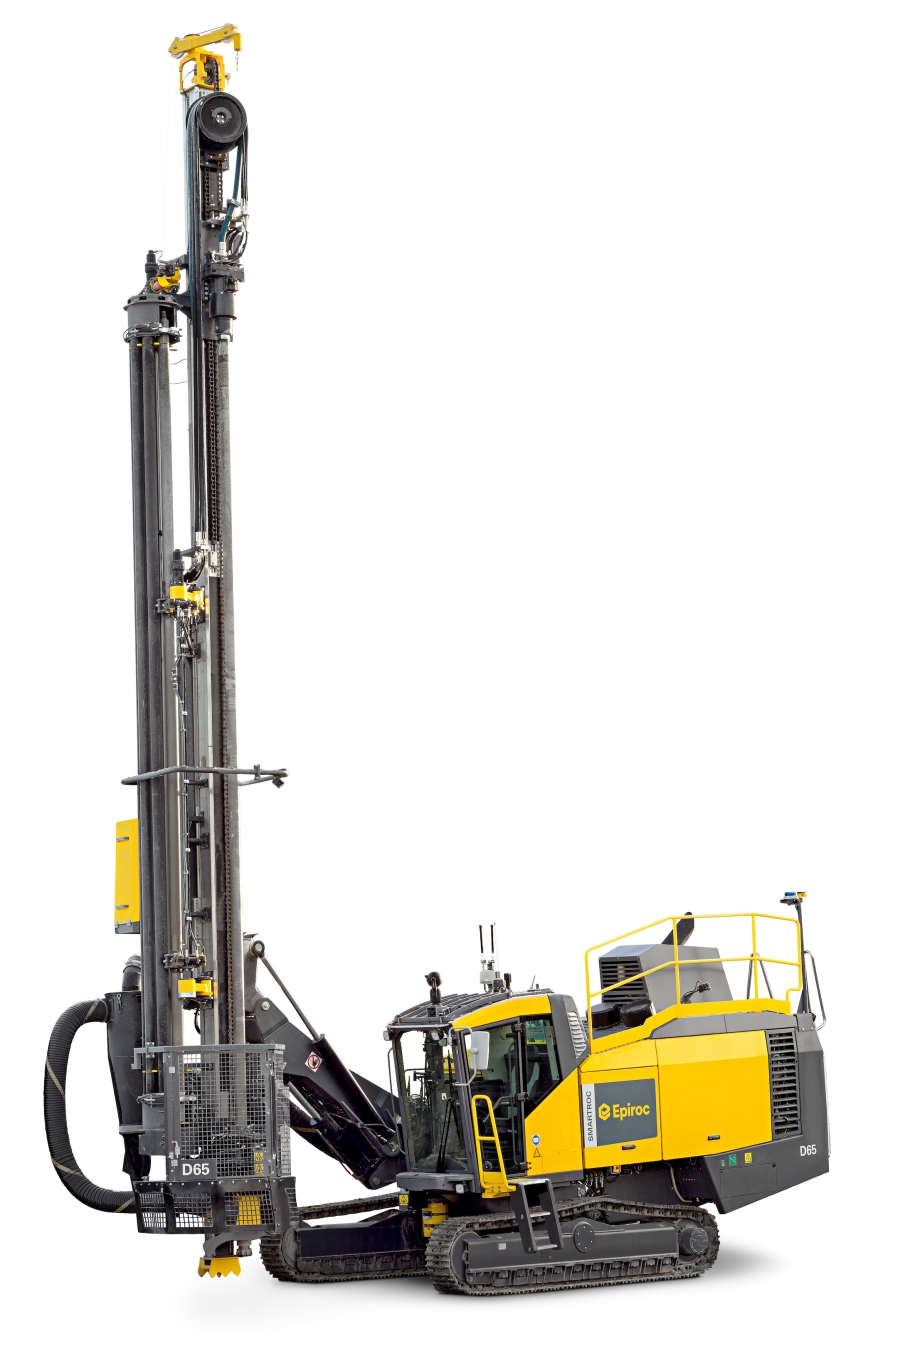 Epiroc M-series DTH hammers designed for maximum drill speed and productivity on SmartROC D65 machines